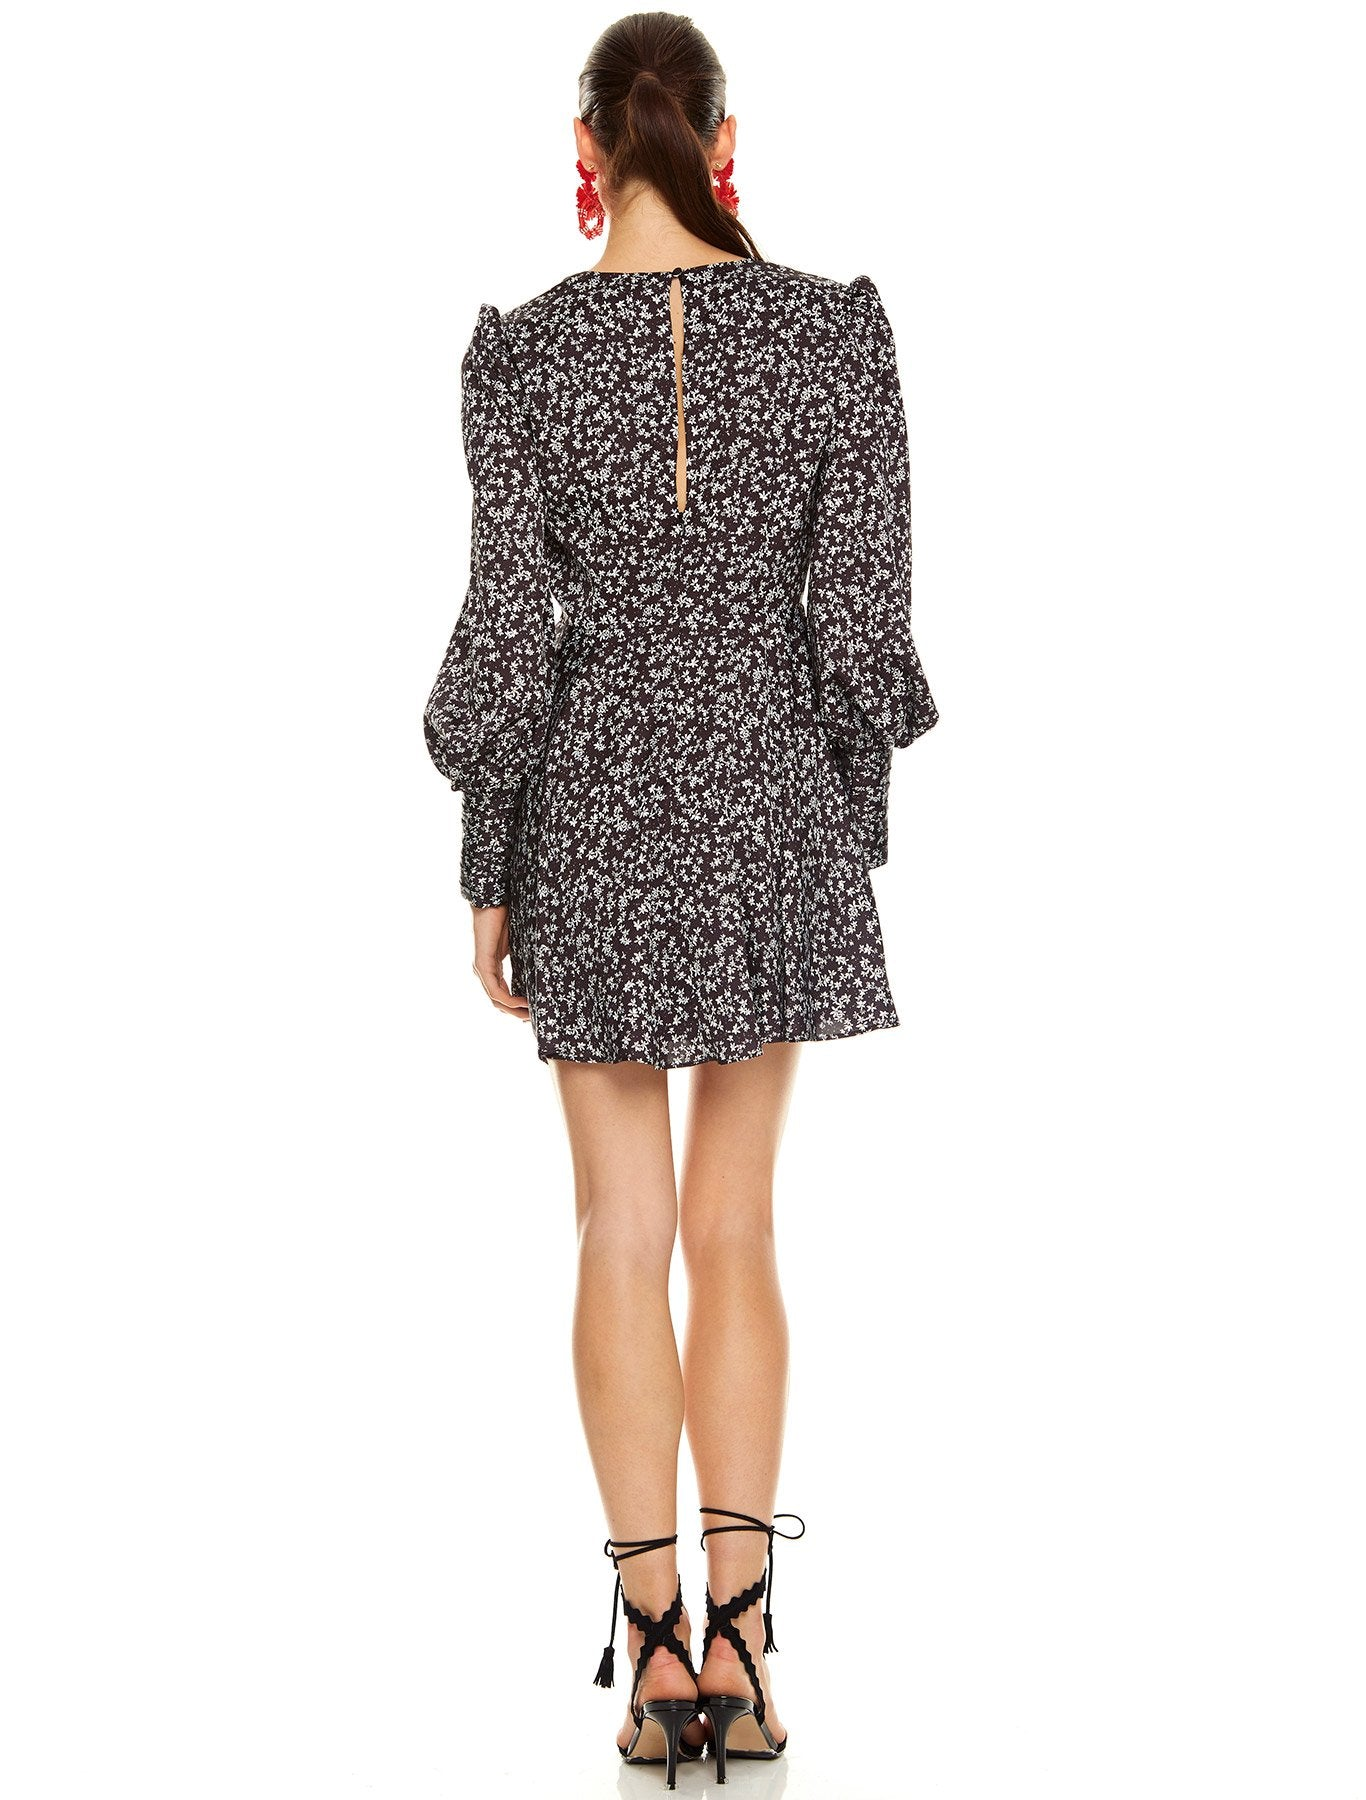 EMBODY THE LOVE L/S MINI DRESS